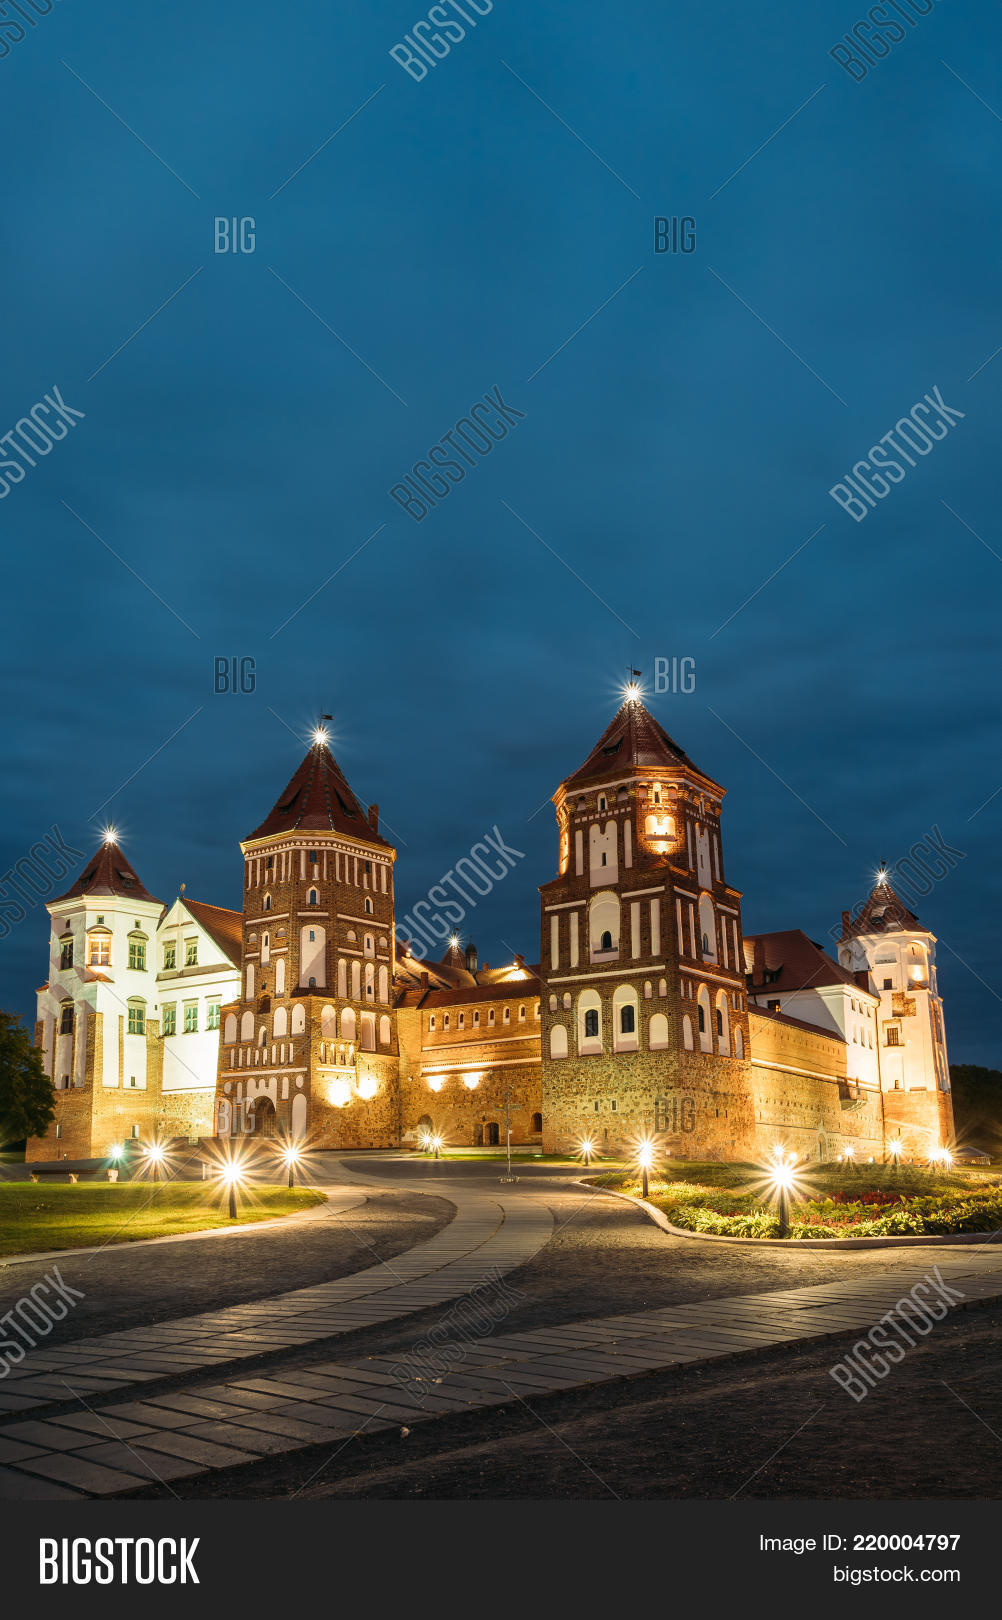 Mir Castle Complex In Evening Illumination Lighting Famous Landmark Ancient